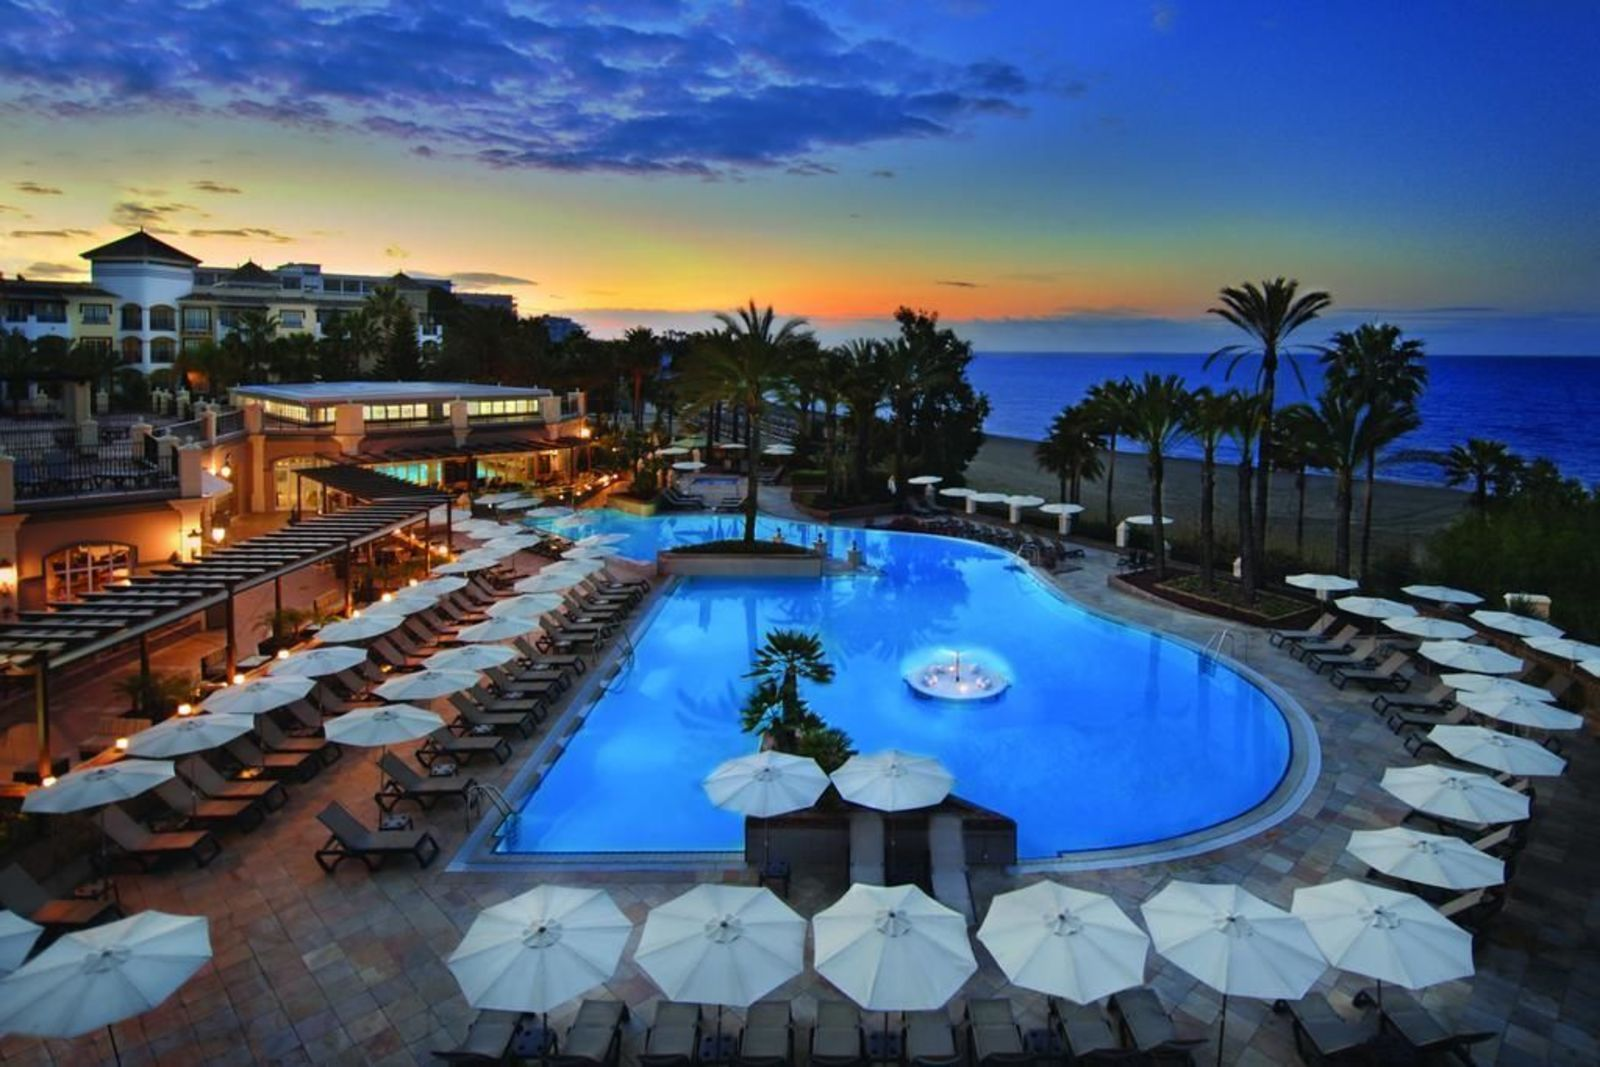 Marriott Playa Andaluza - Rentals Resales 30% discount on